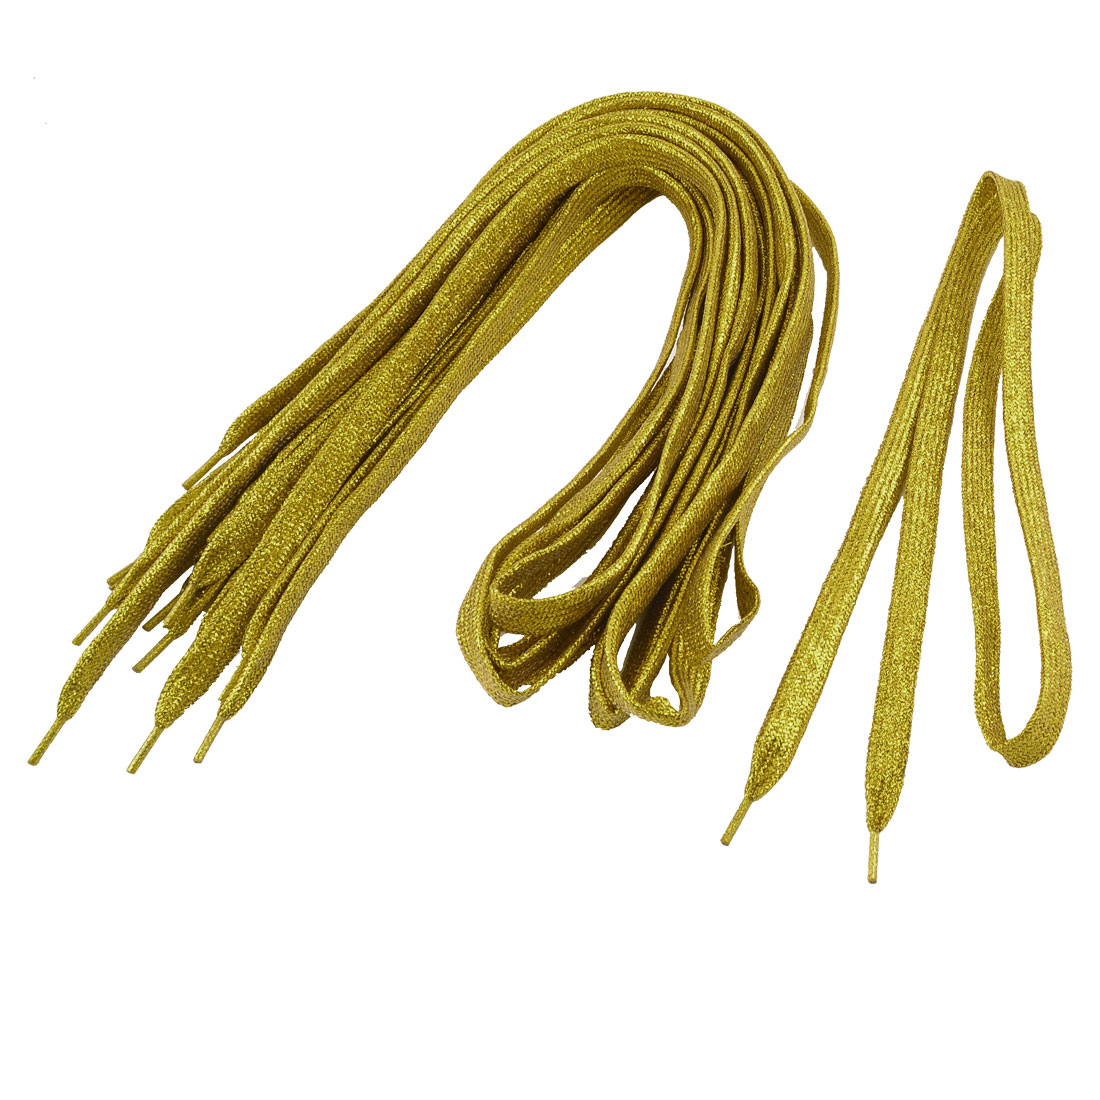 5 Pairs Plastic Tips Glittery Shoelaces Laces Gold Tone for Men Women